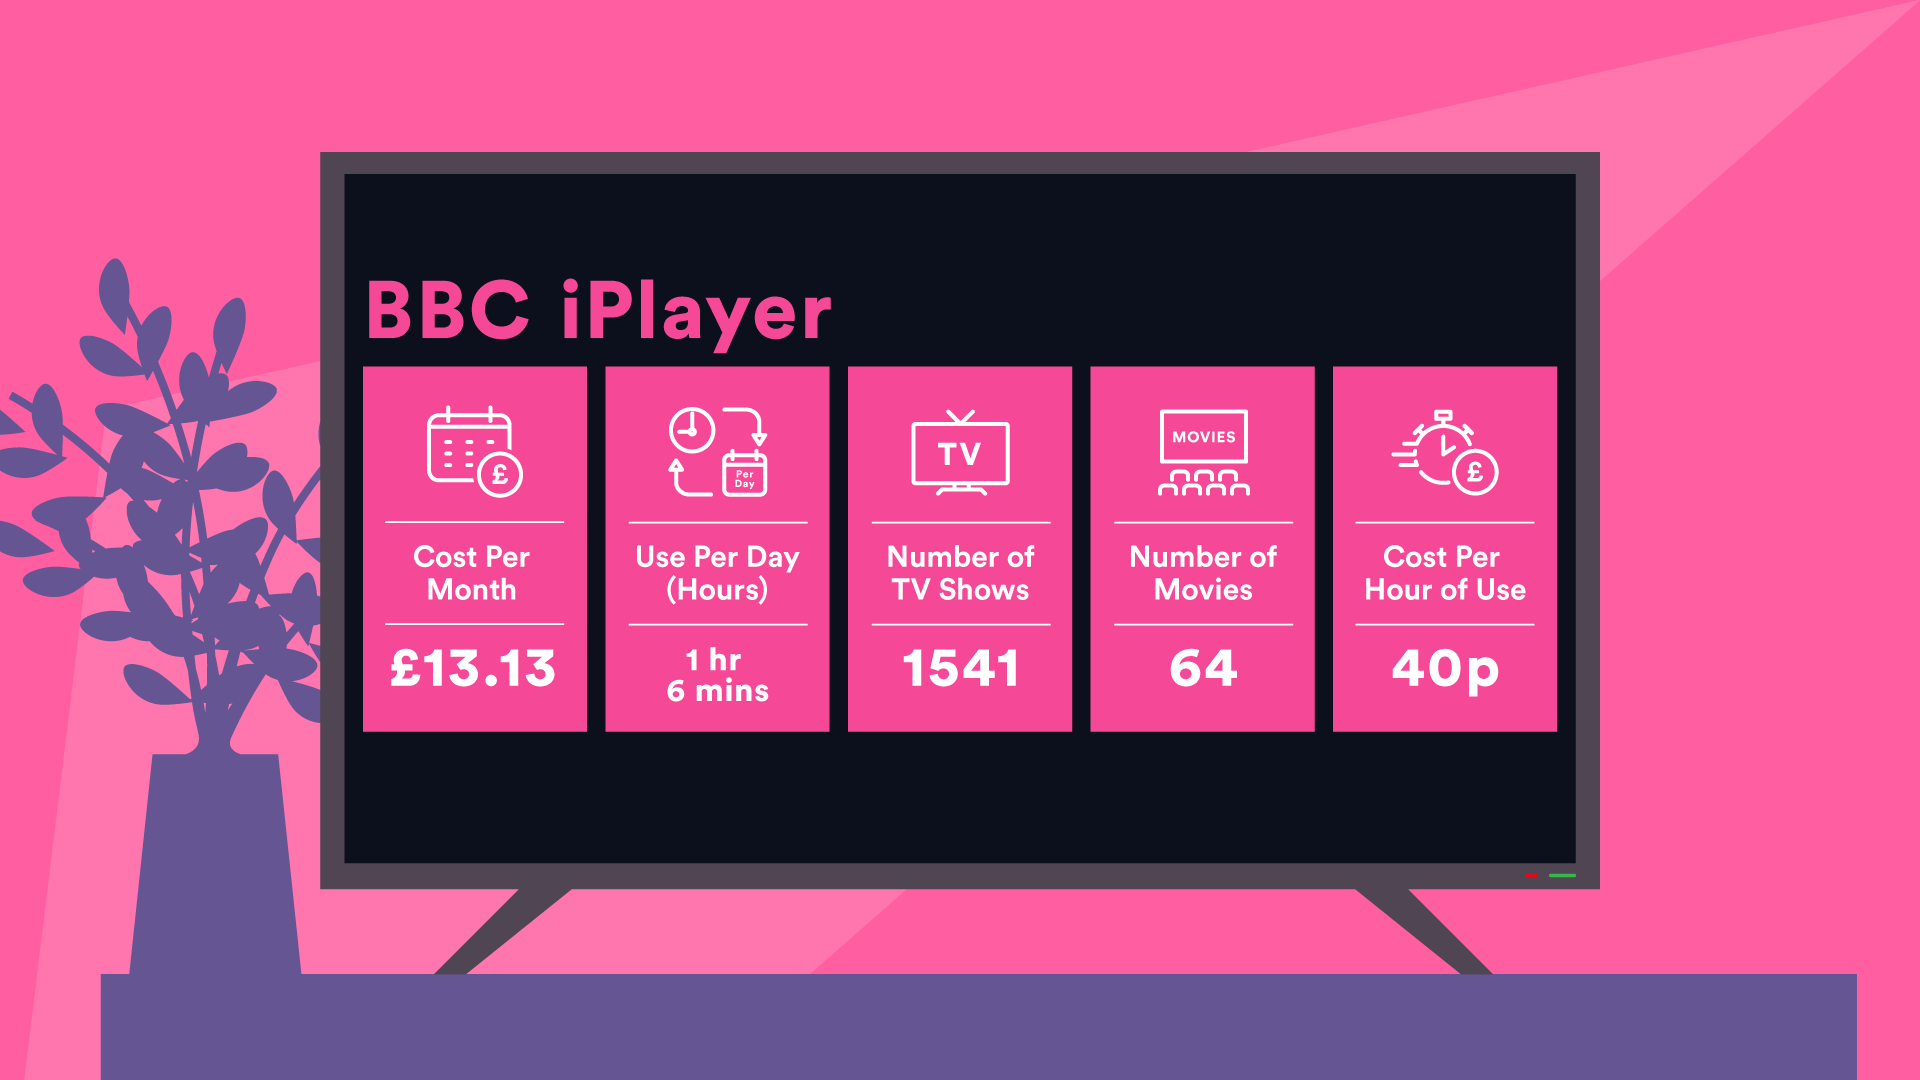 BBC iPlayer costs